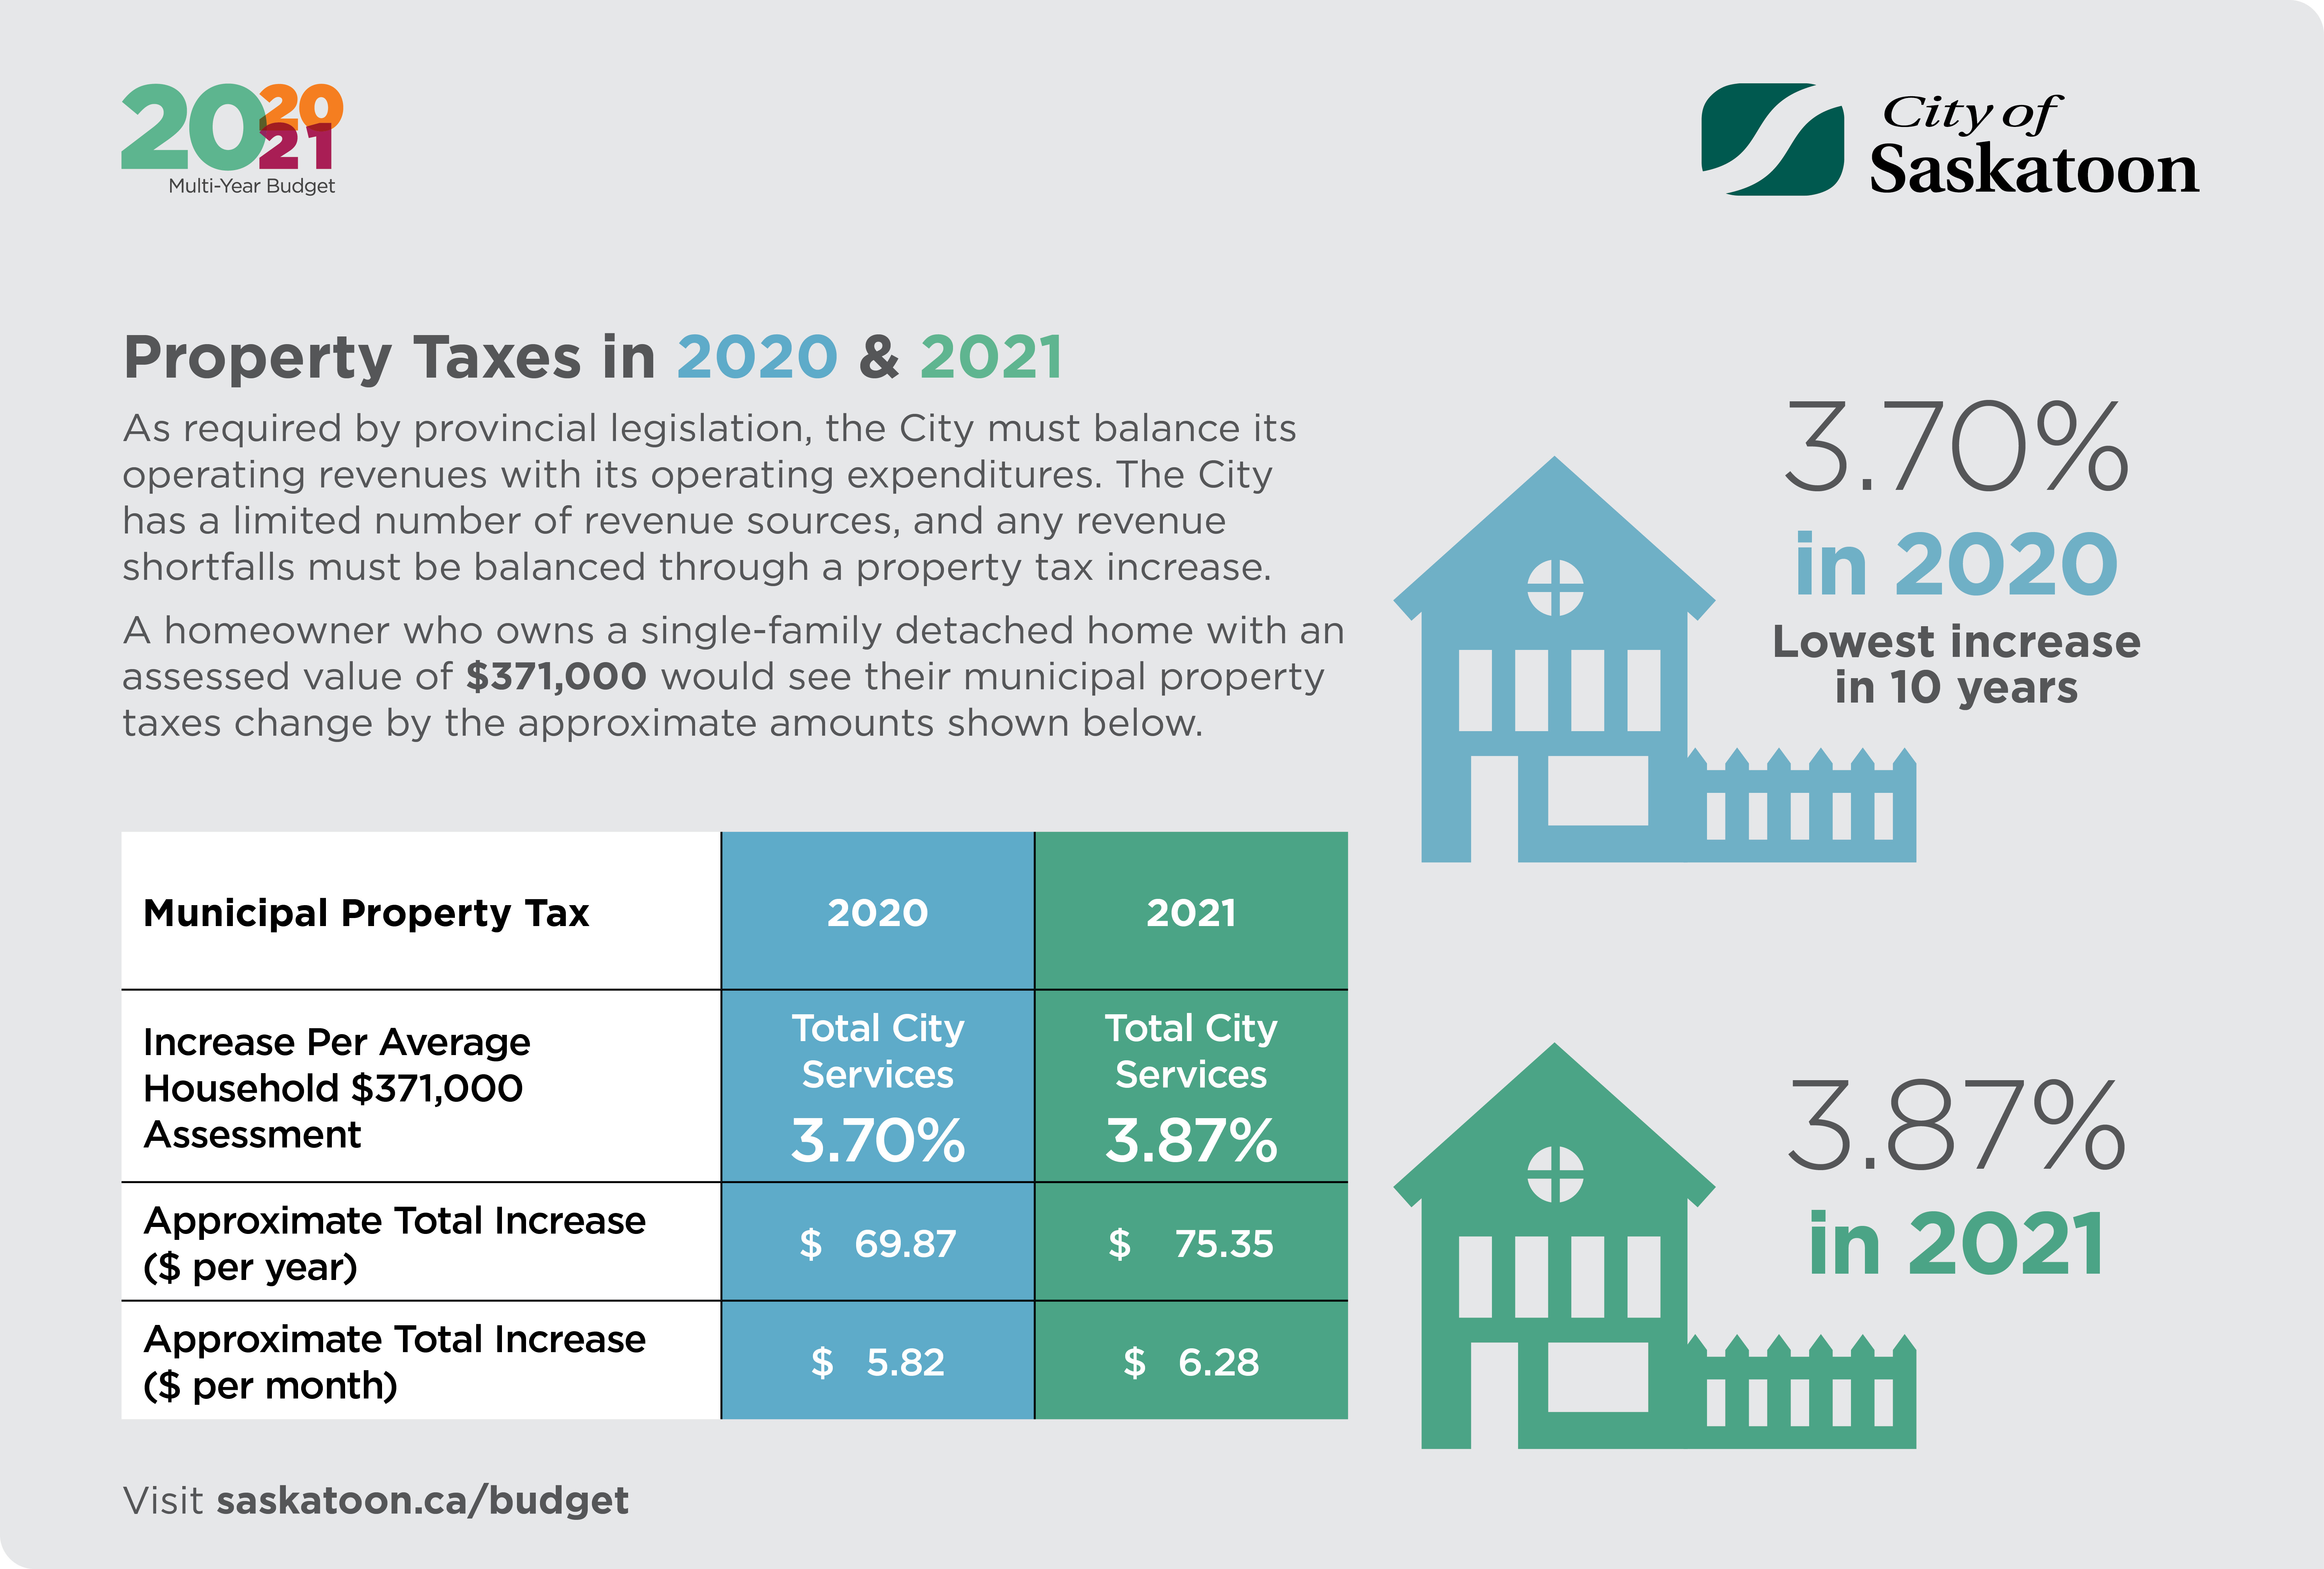 MUNICIPAL_PROPERTY_TAX_IN_2020-2021.jpg